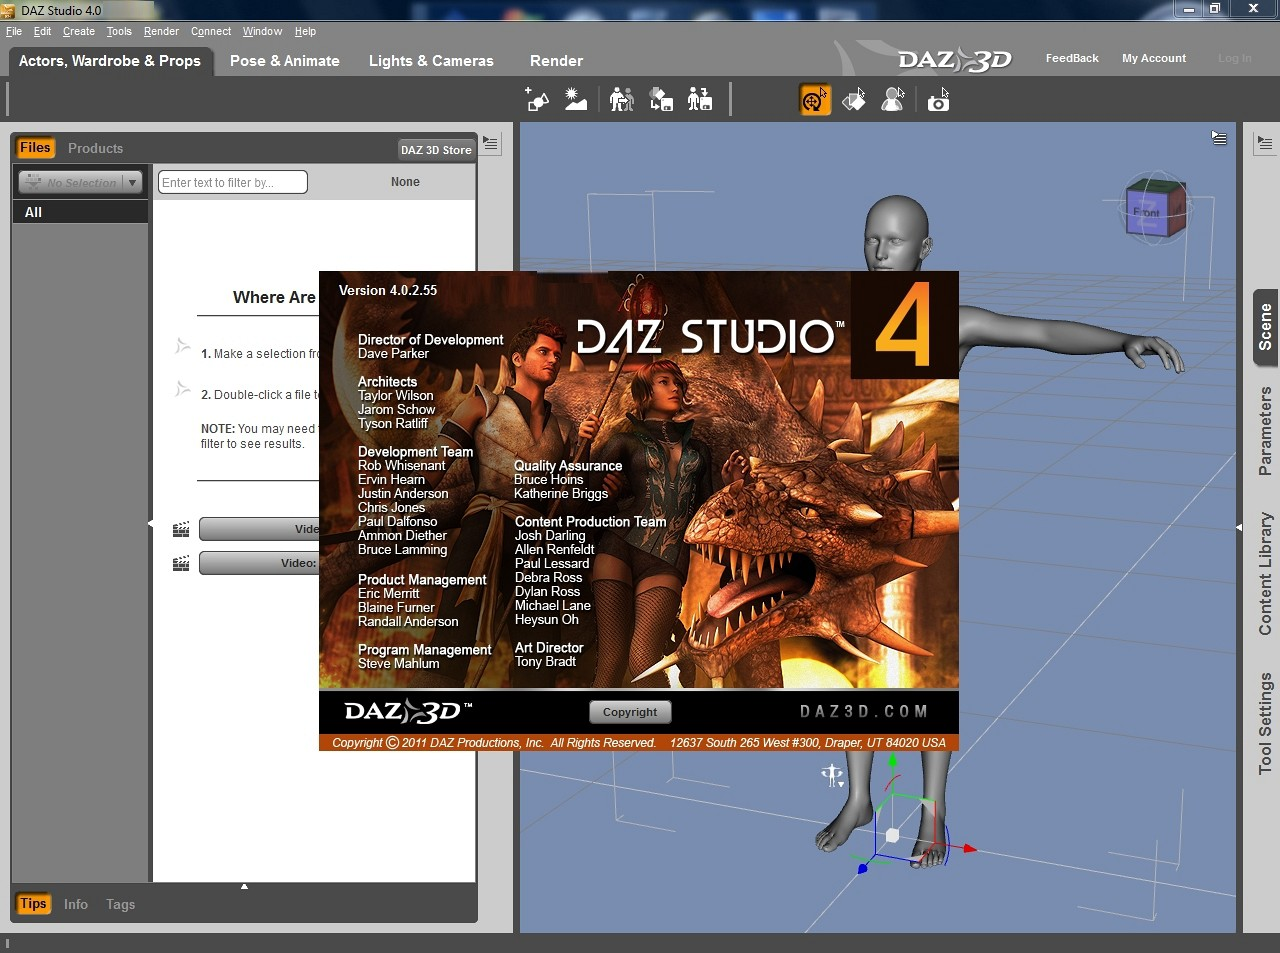 Buy DAZ3D Daz Studio Pro 4 6 0 18 64-bit download for Windows